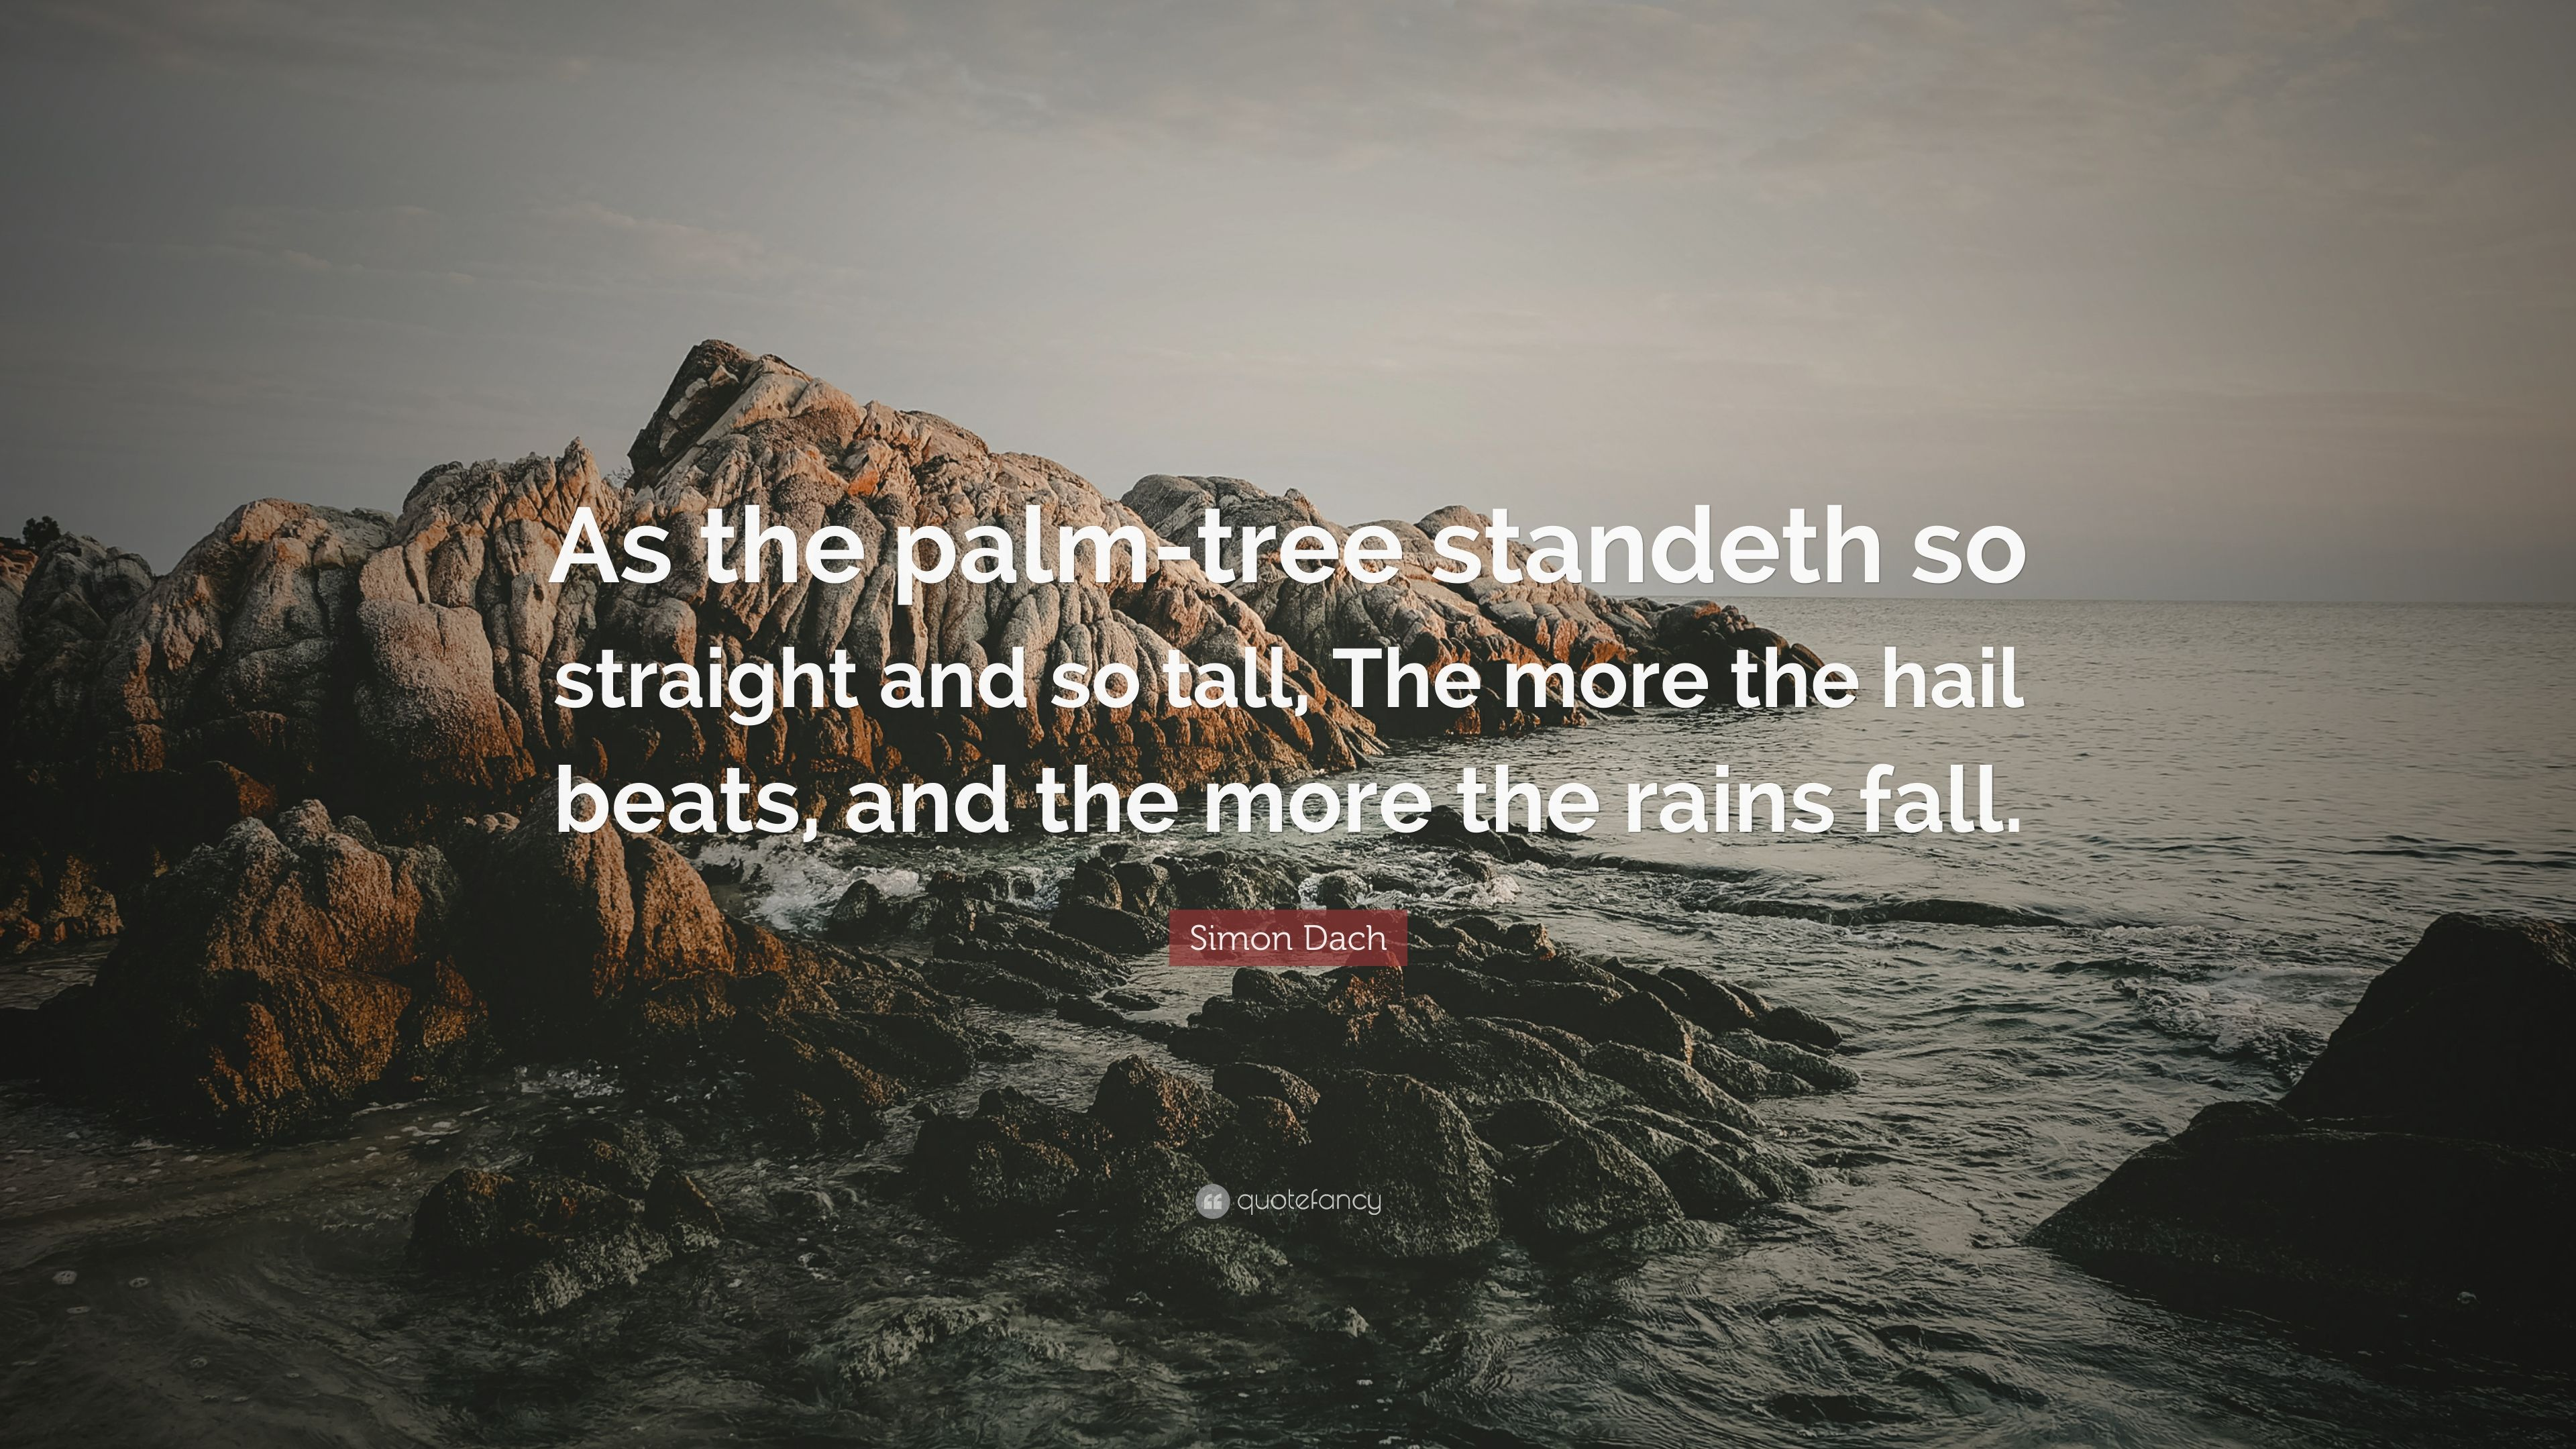 Simon Dach Quote As The Palm Tree Standeth So Straight And So Tall